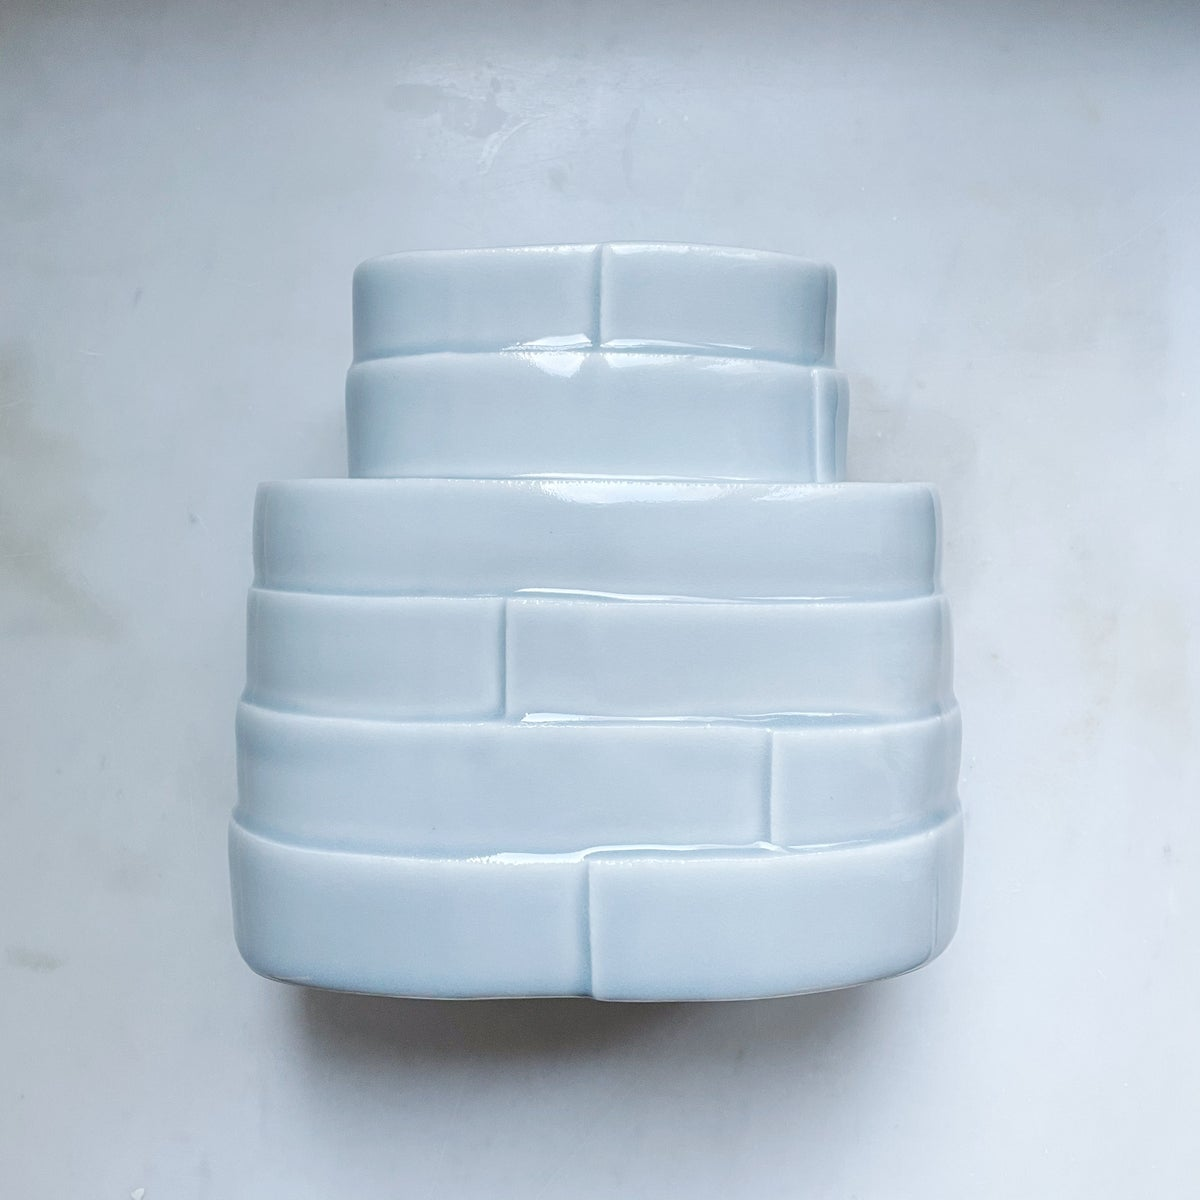 Image of VITTA Vase // XL